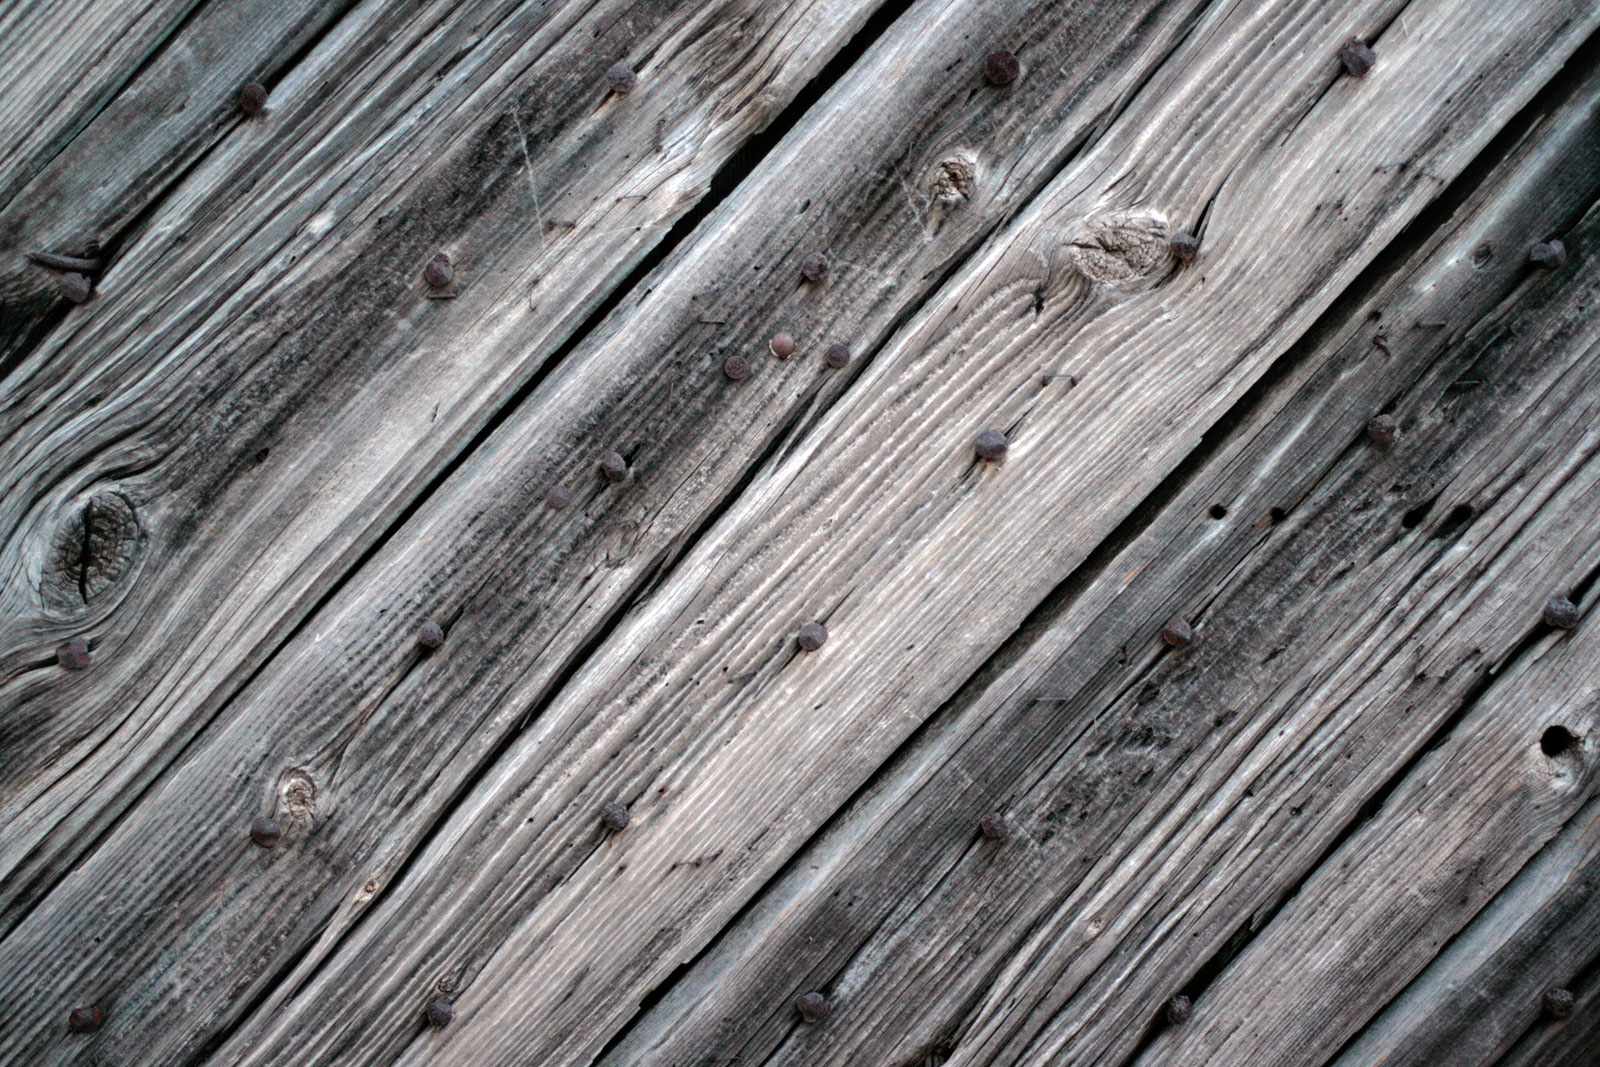 PSD Mockup Cracked Vintage Wood Plank Flooring Rusty Nails